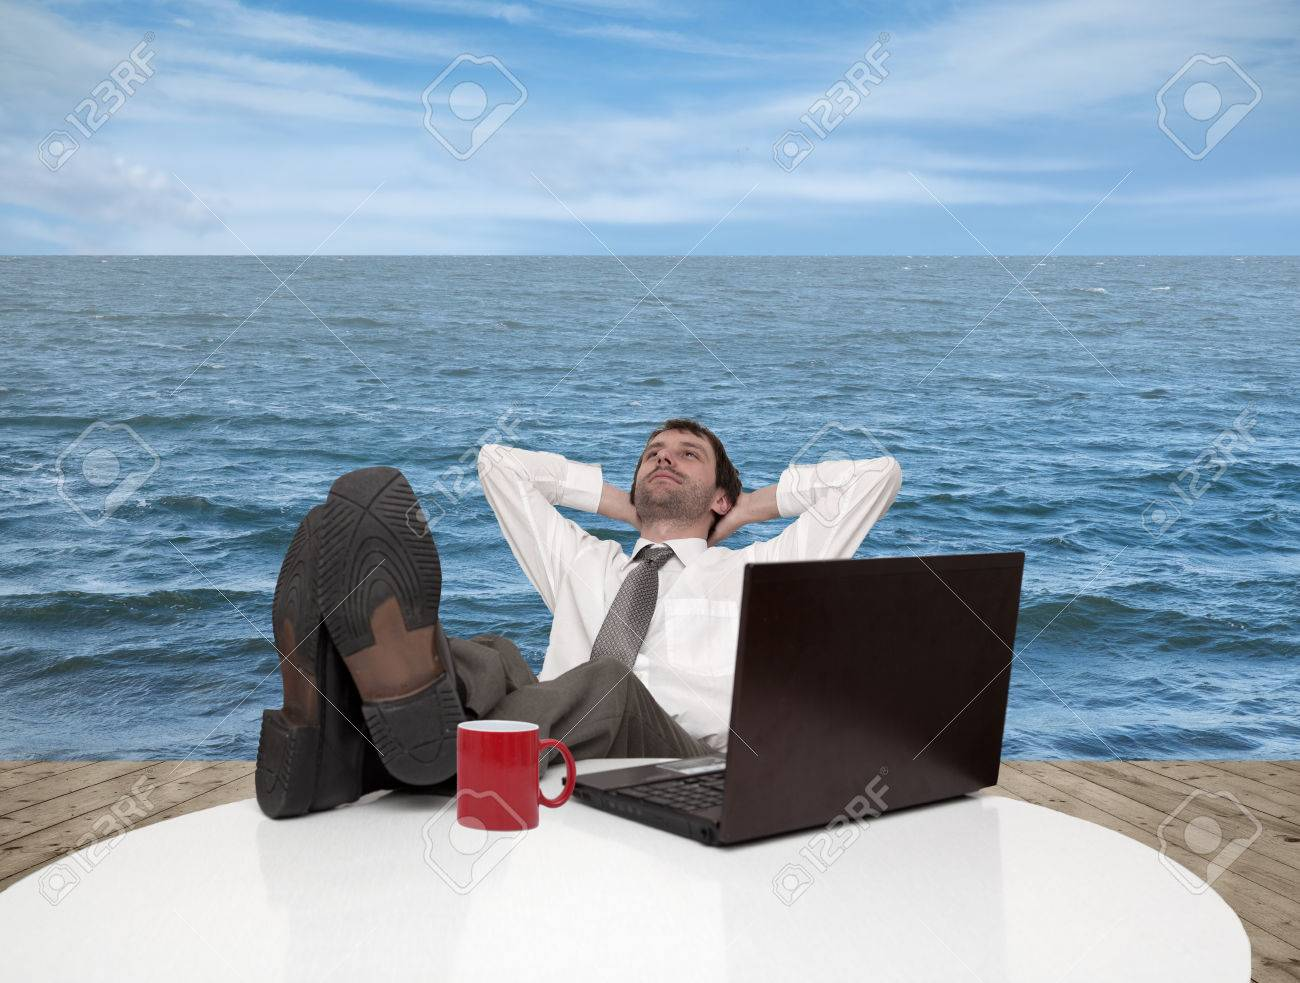 Young businessman relaxes on a pier by the sea Stock Photo - 29223016